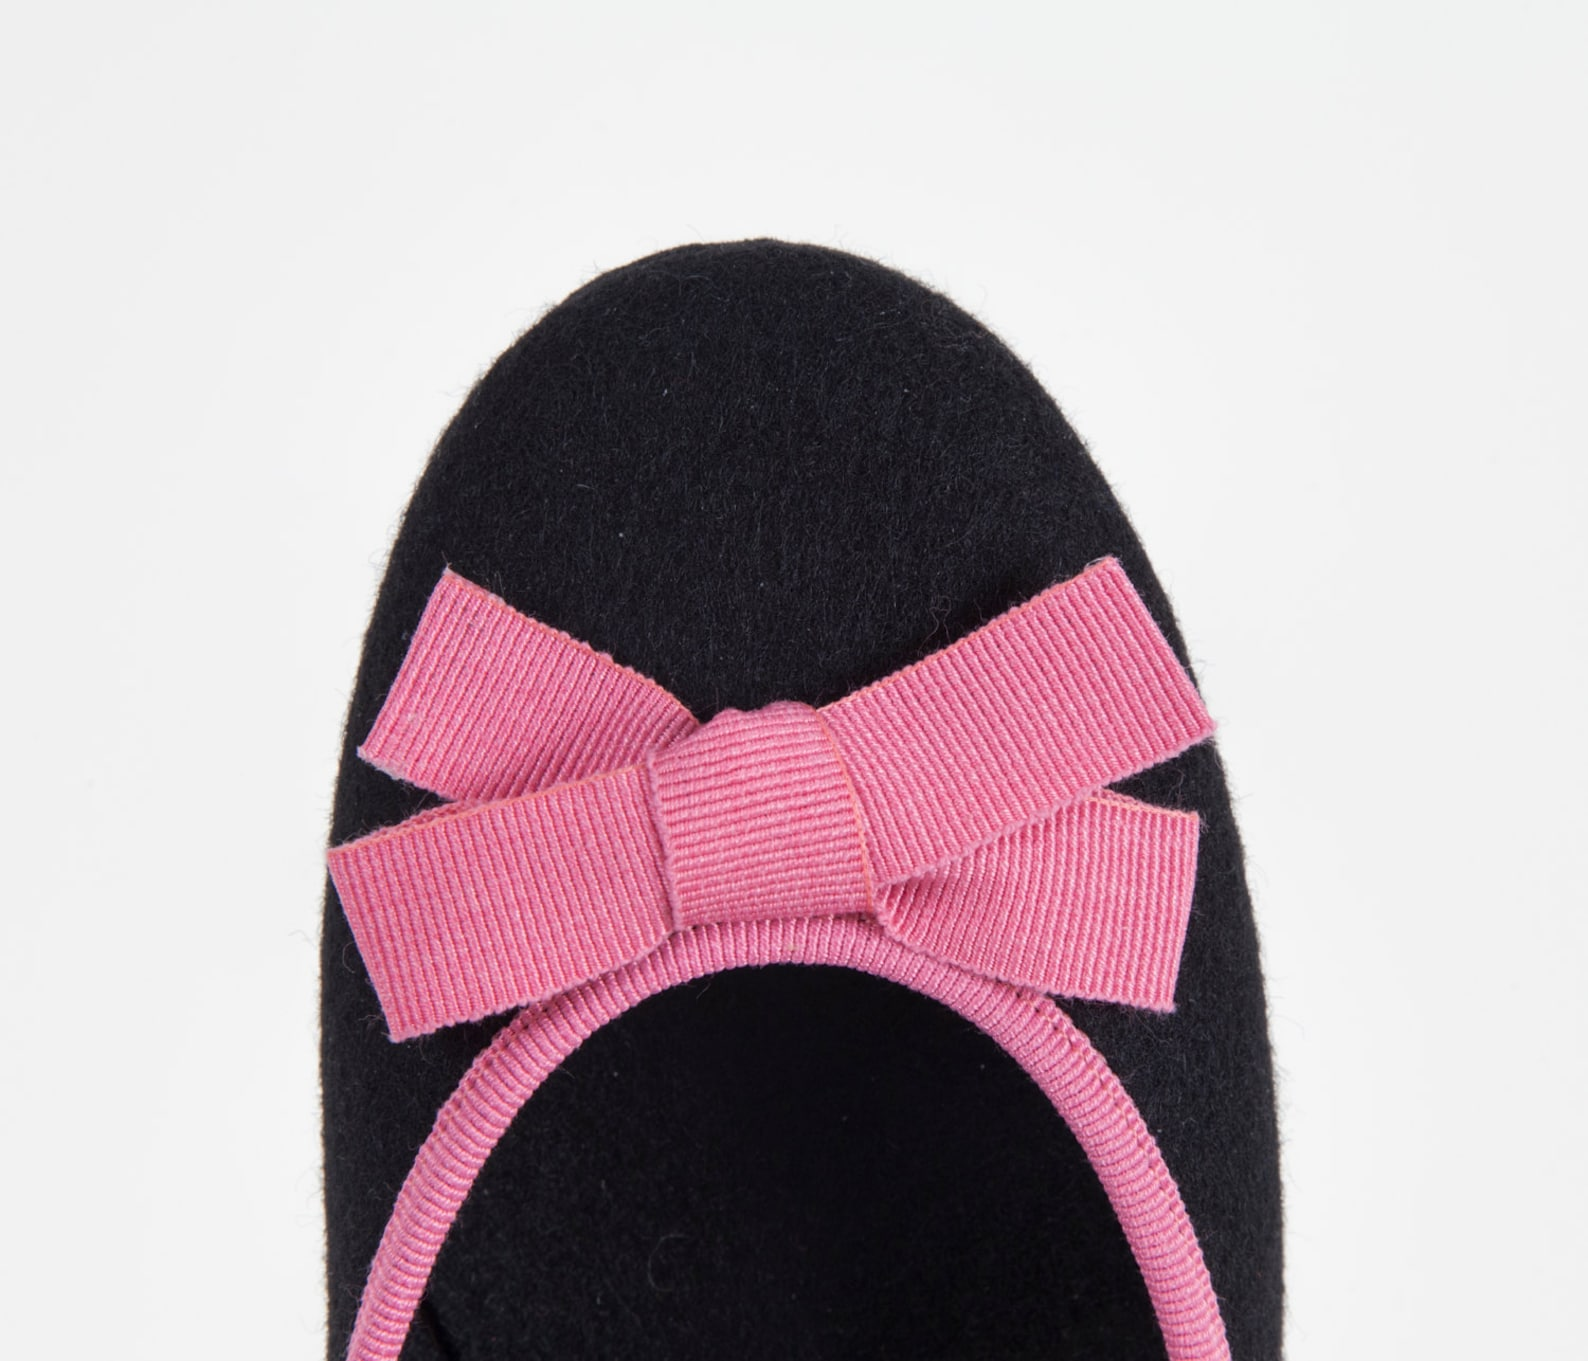 women's slippers- black ballet flat- merino wool felt- handmade in italy- grosgrain ribbon & bow- size eu 36